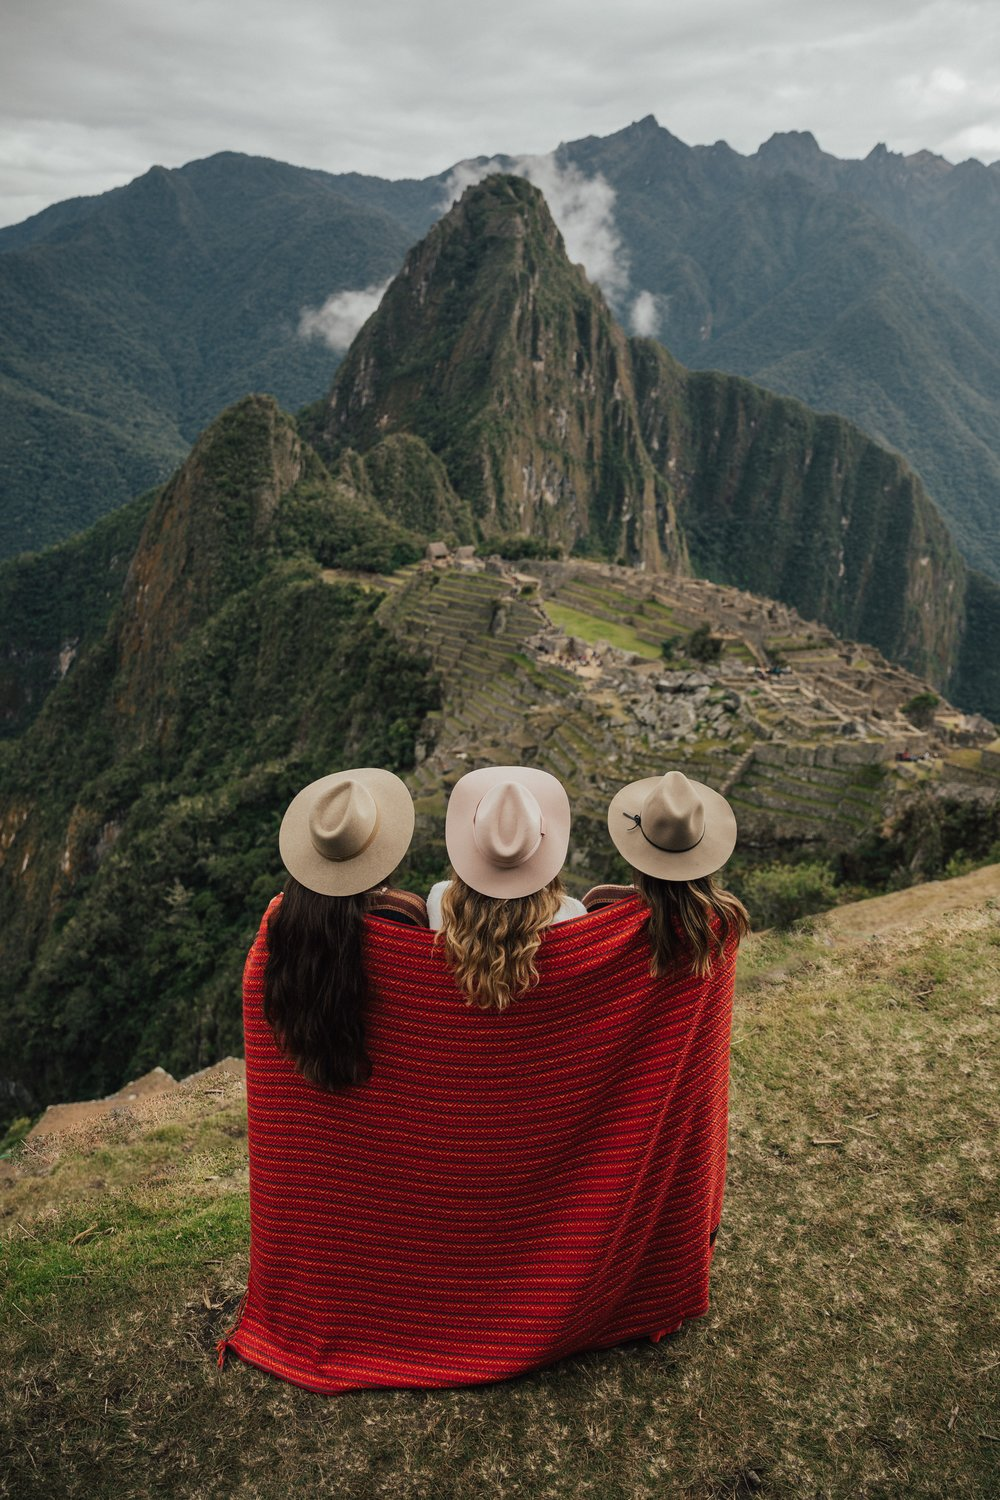 Acanela expeditionS |  Join us on a small group tour to Peru,.Climb Machu Picchu at sunrise, stroll the bustling markets of the sacred valley, AND EXPLORE CUSCO!